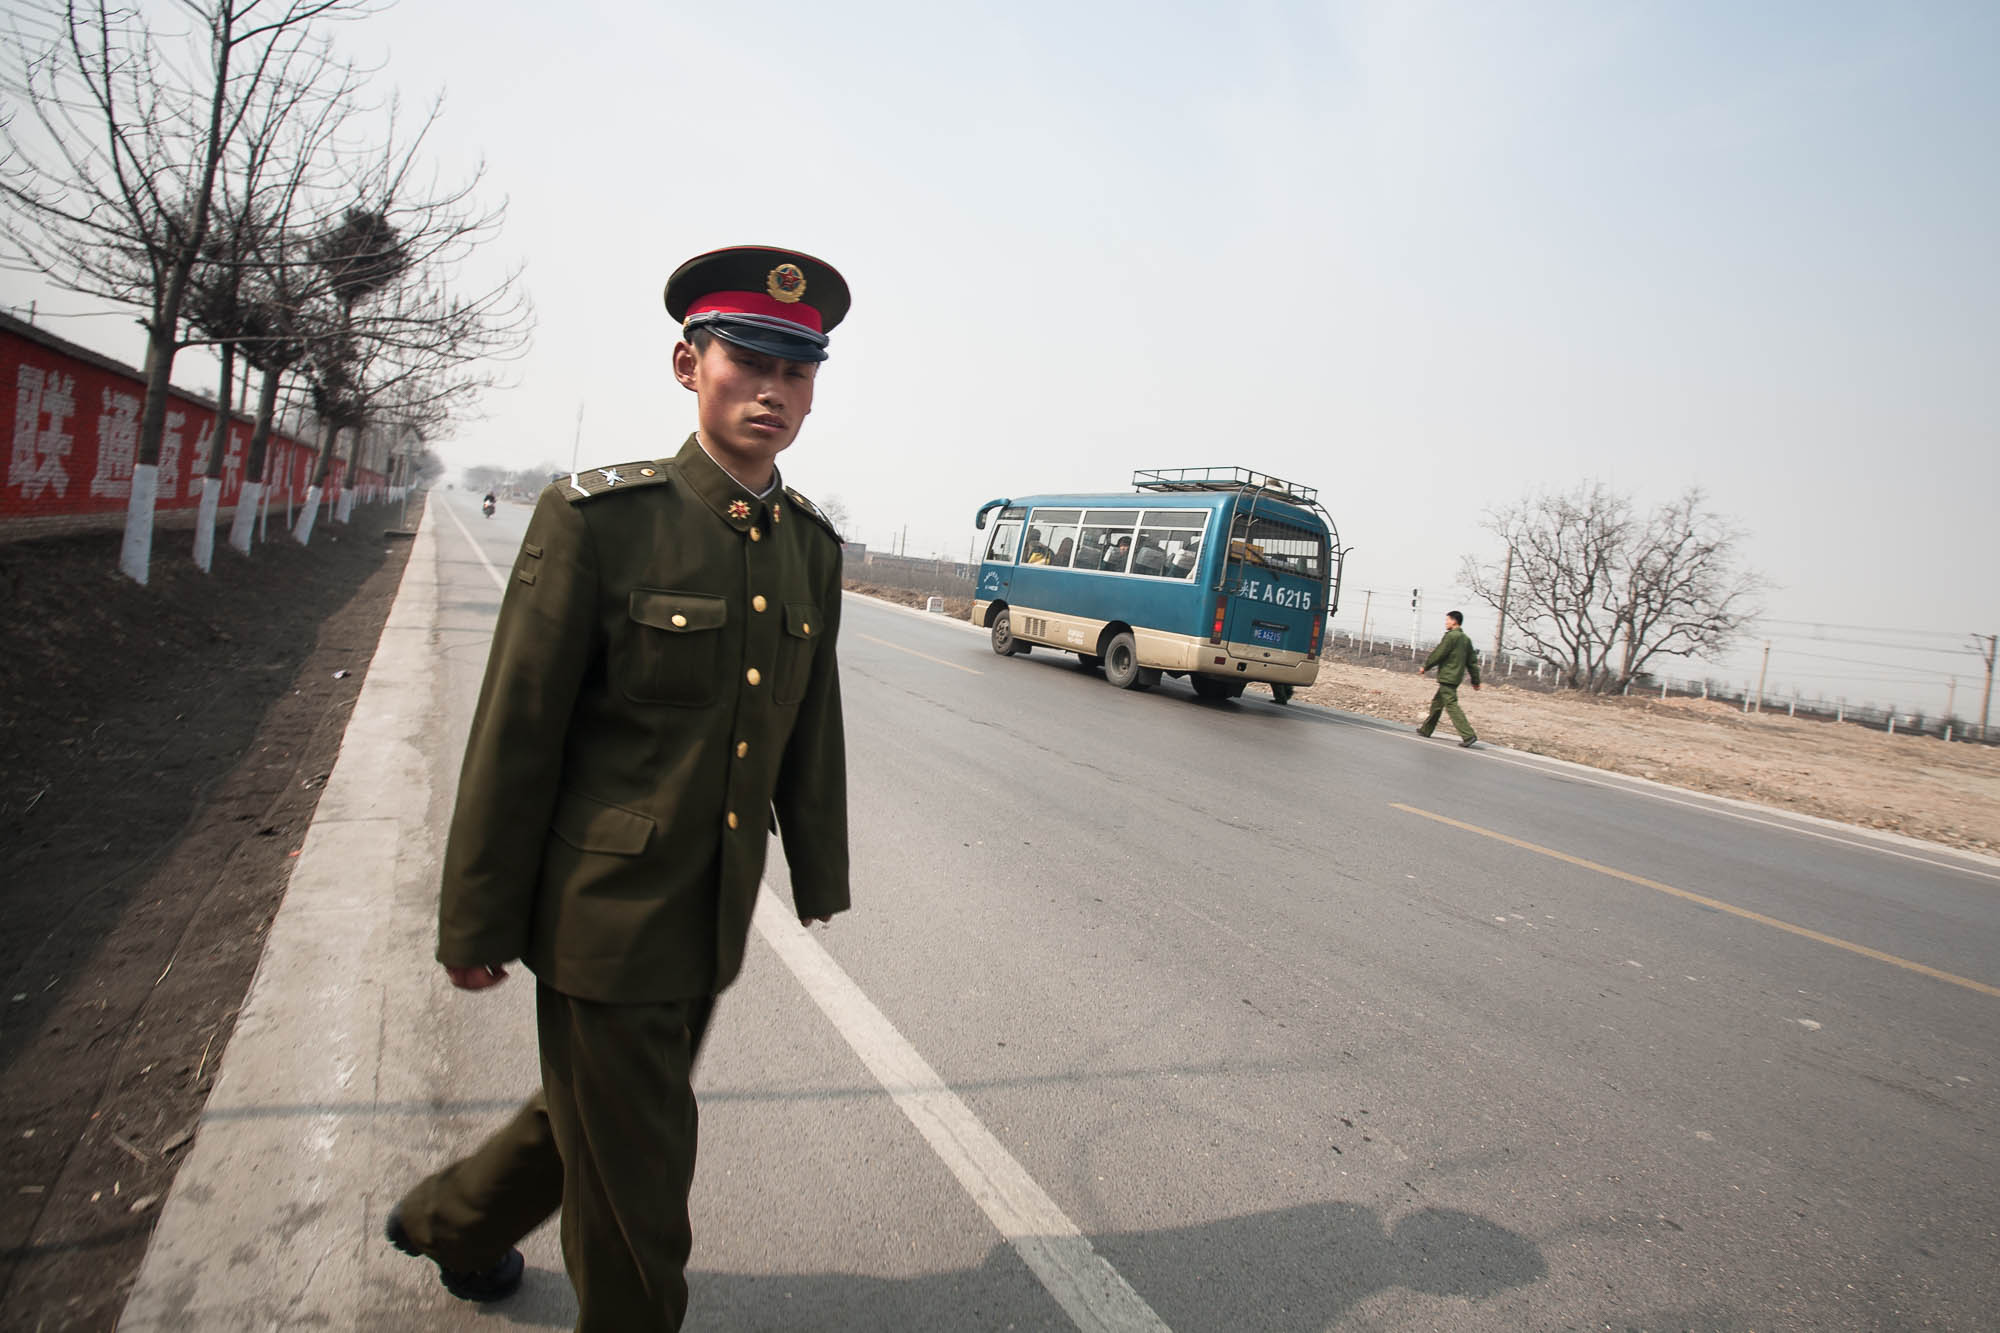 soldier and bus